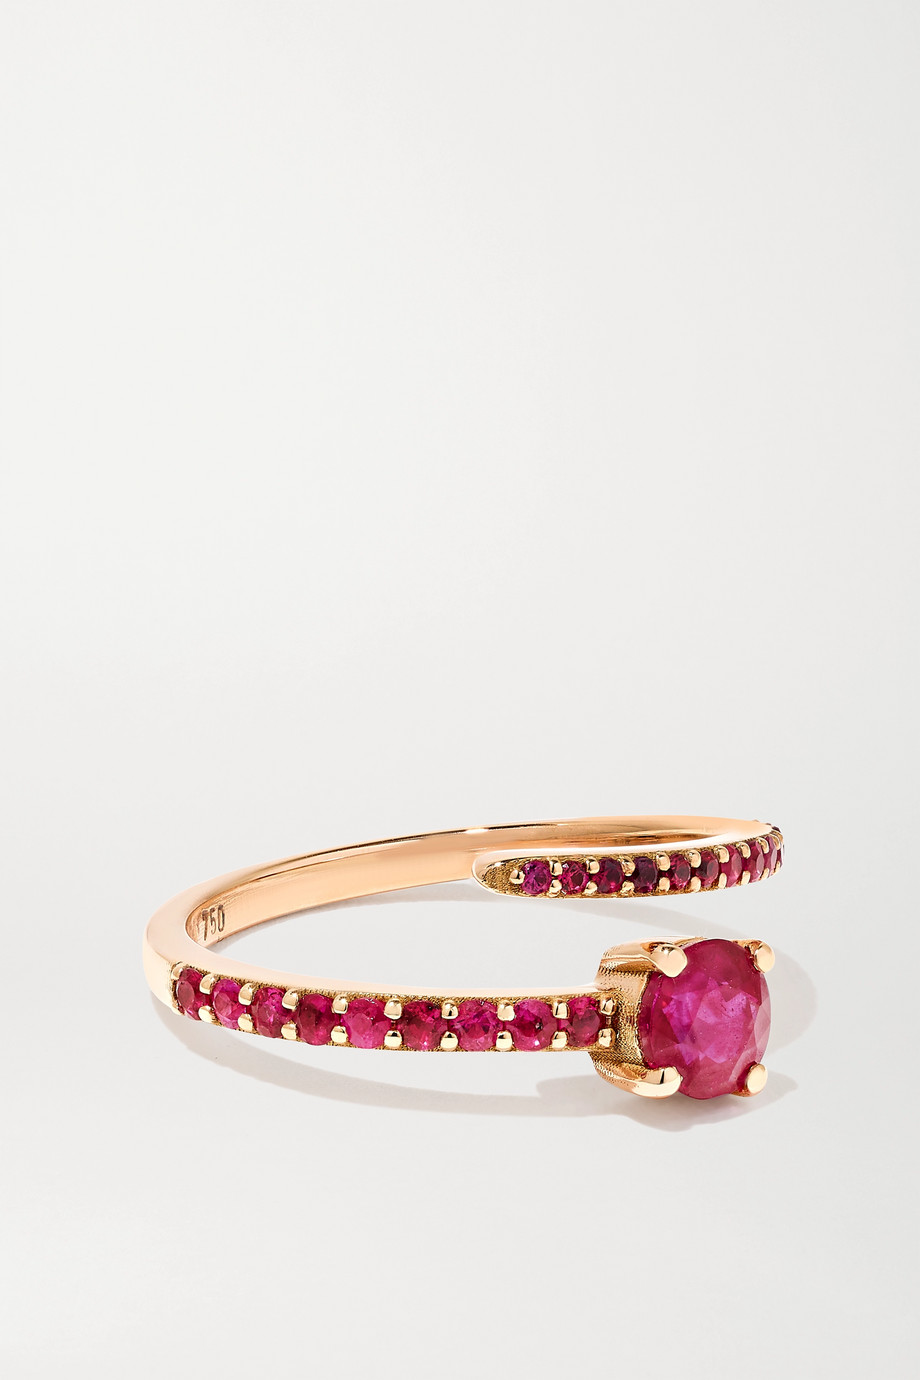 Ileana Makri Grass Seed 18-karat rose gold ruby ring